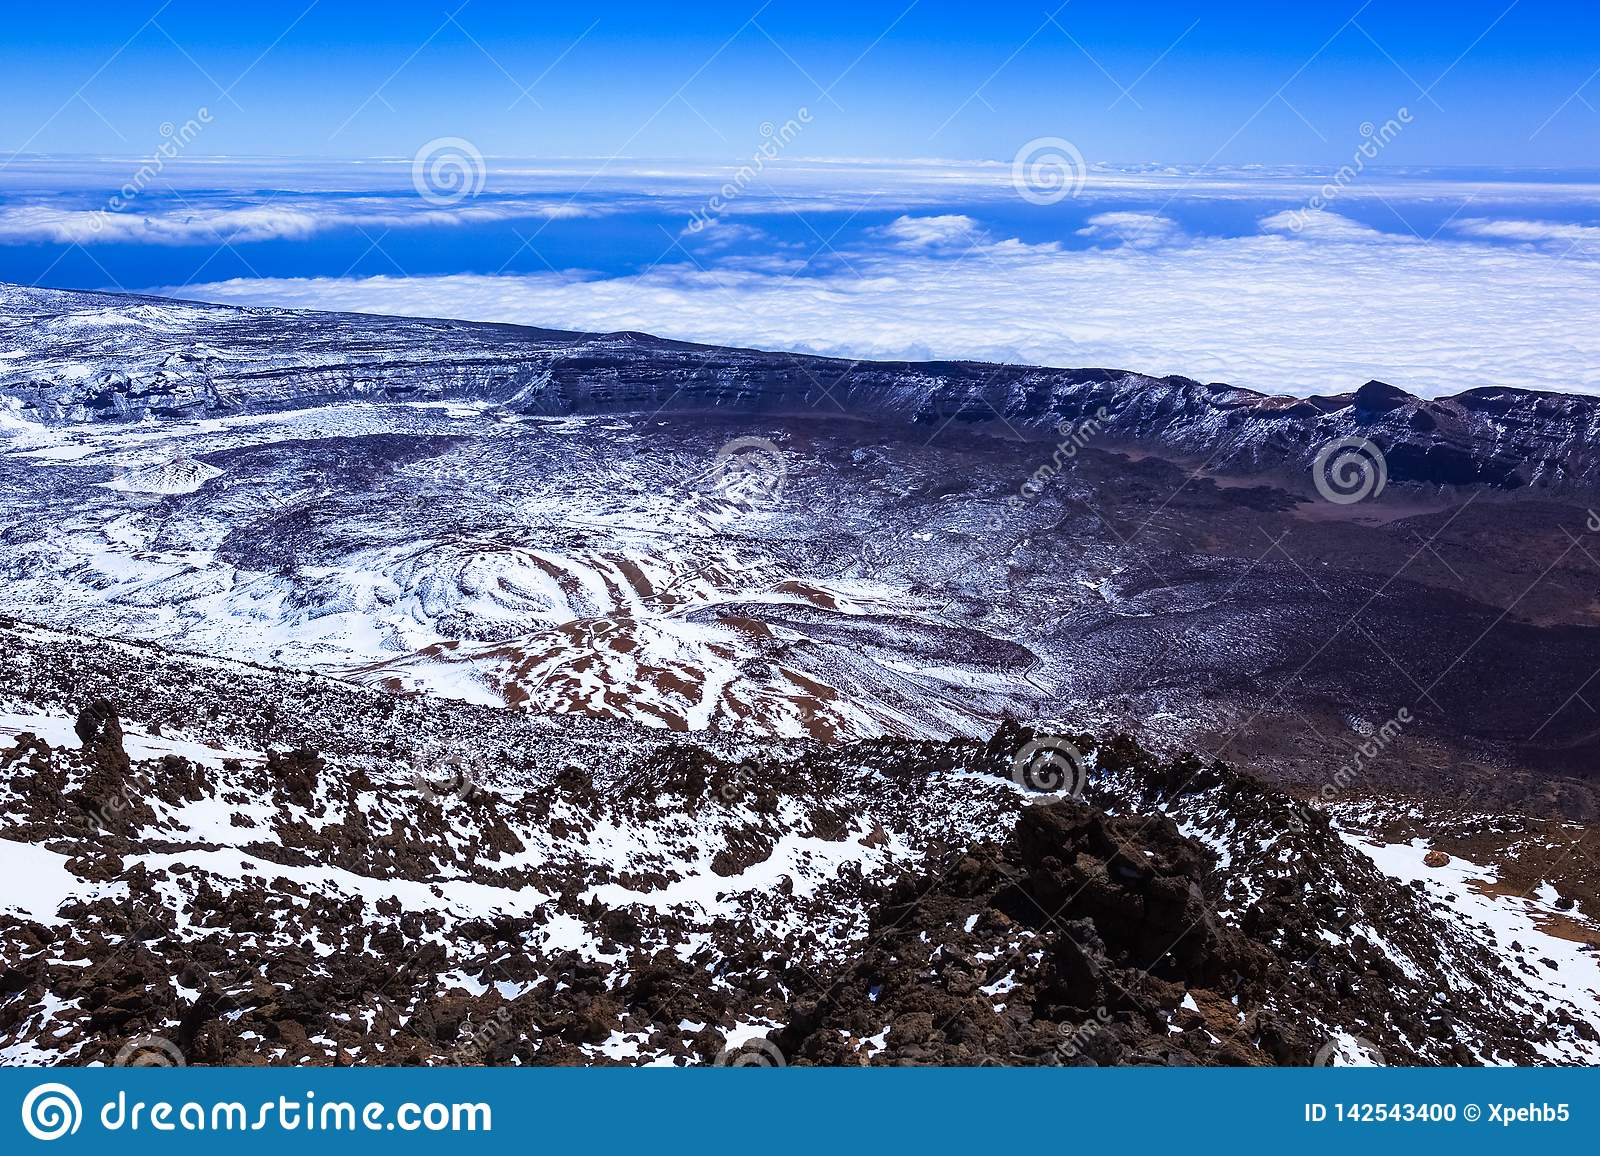 Snow-covered mountain landscape, view of the rocky landscape from the top of the mountain, volcano, clouds